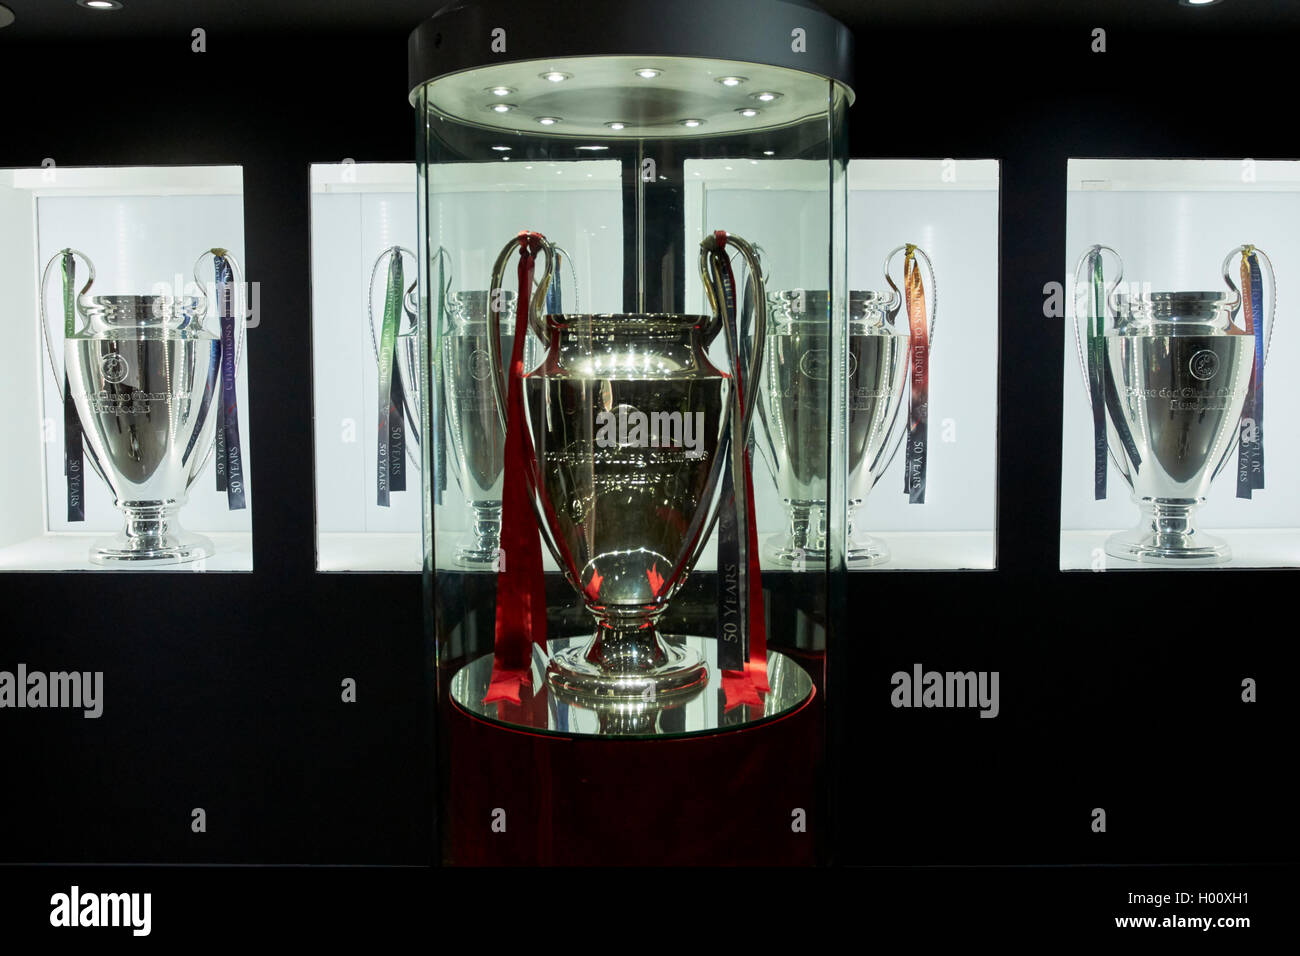 European Cup Champions League Trophy Room In Museum Liverpool FC Anfield Stadium Merseyside UK